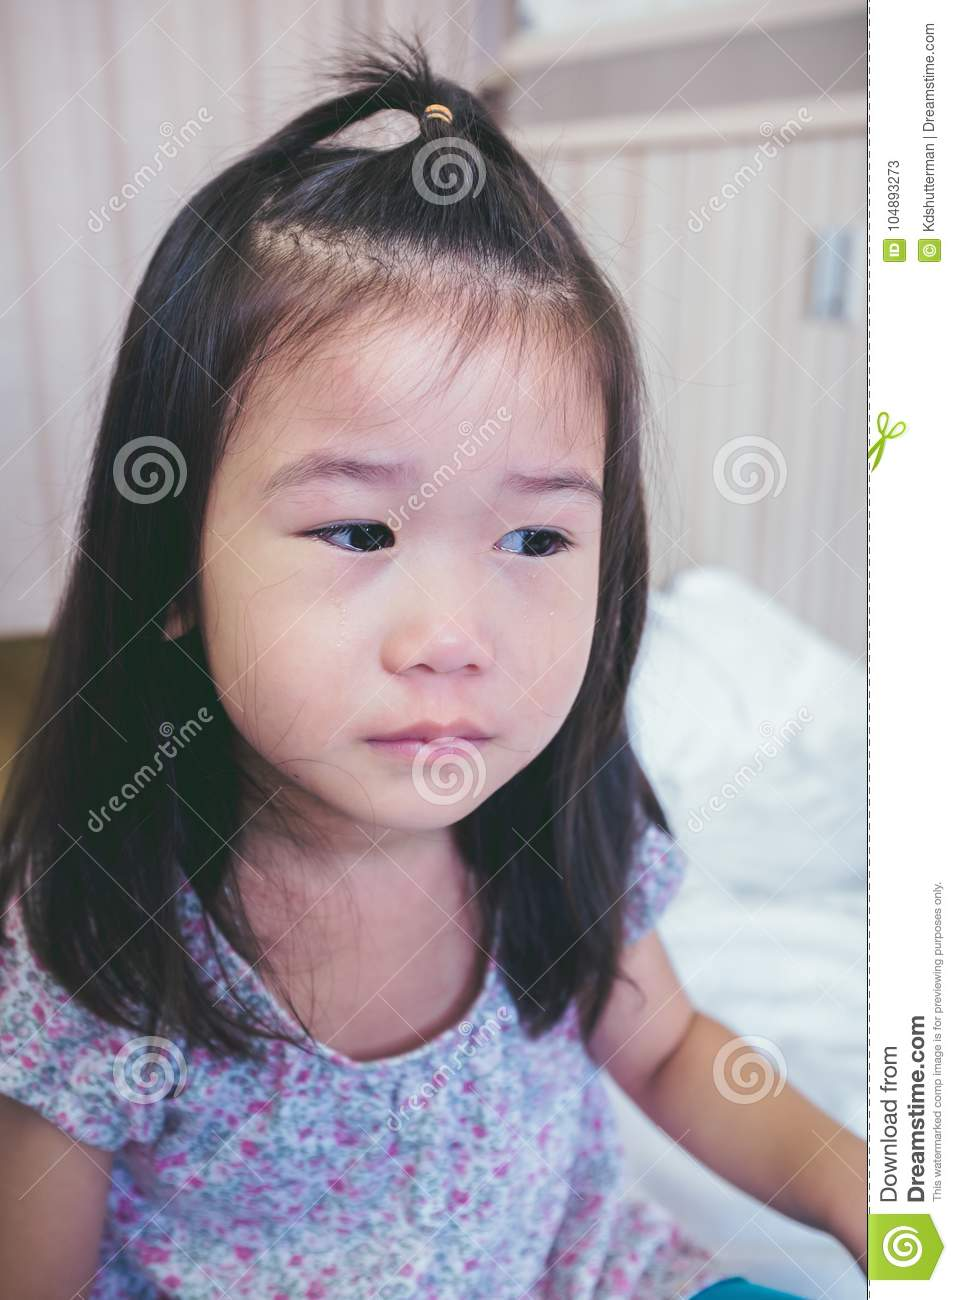 Illness asian child crying while admitted in hospital. Vintage t